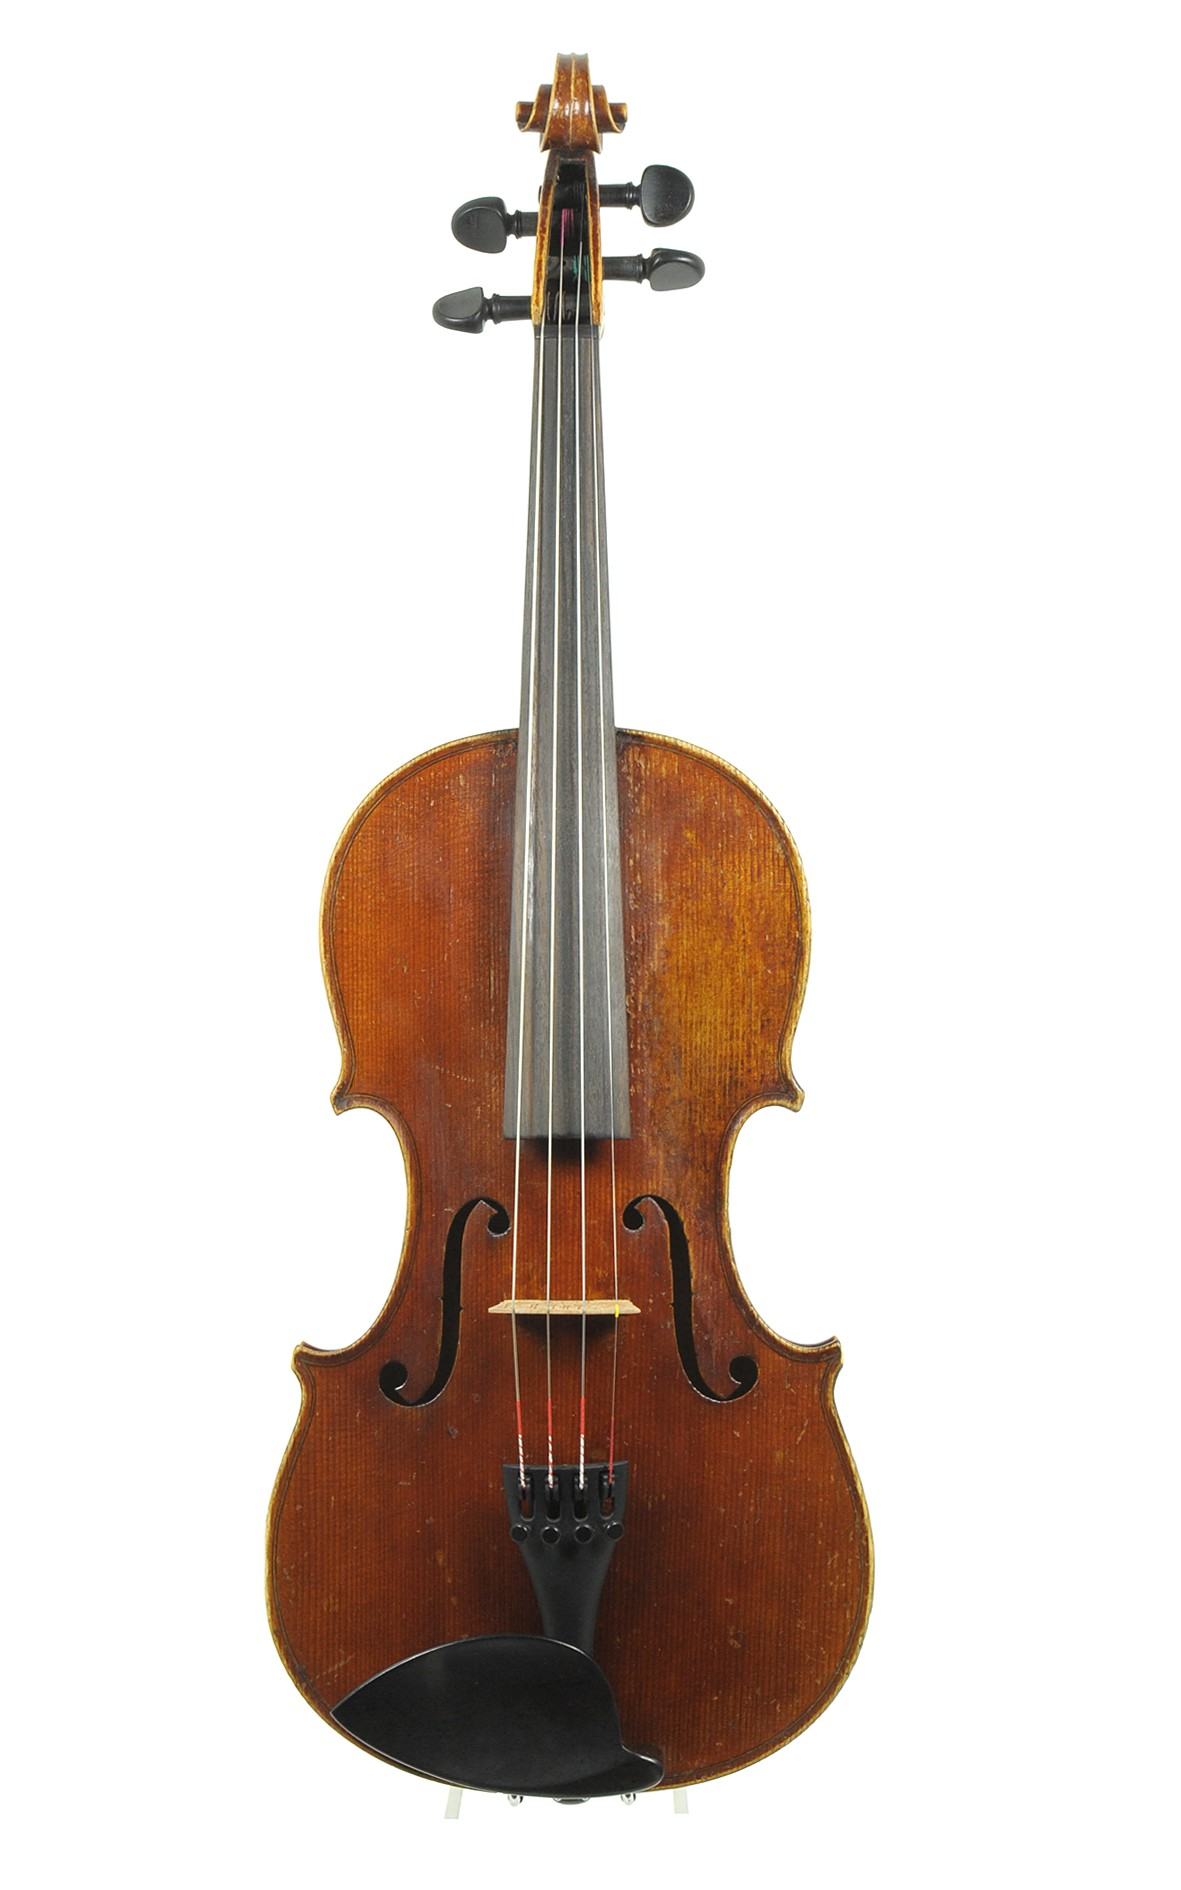 Mittenwald violin, Thomas Fürst approx. 1900 - top